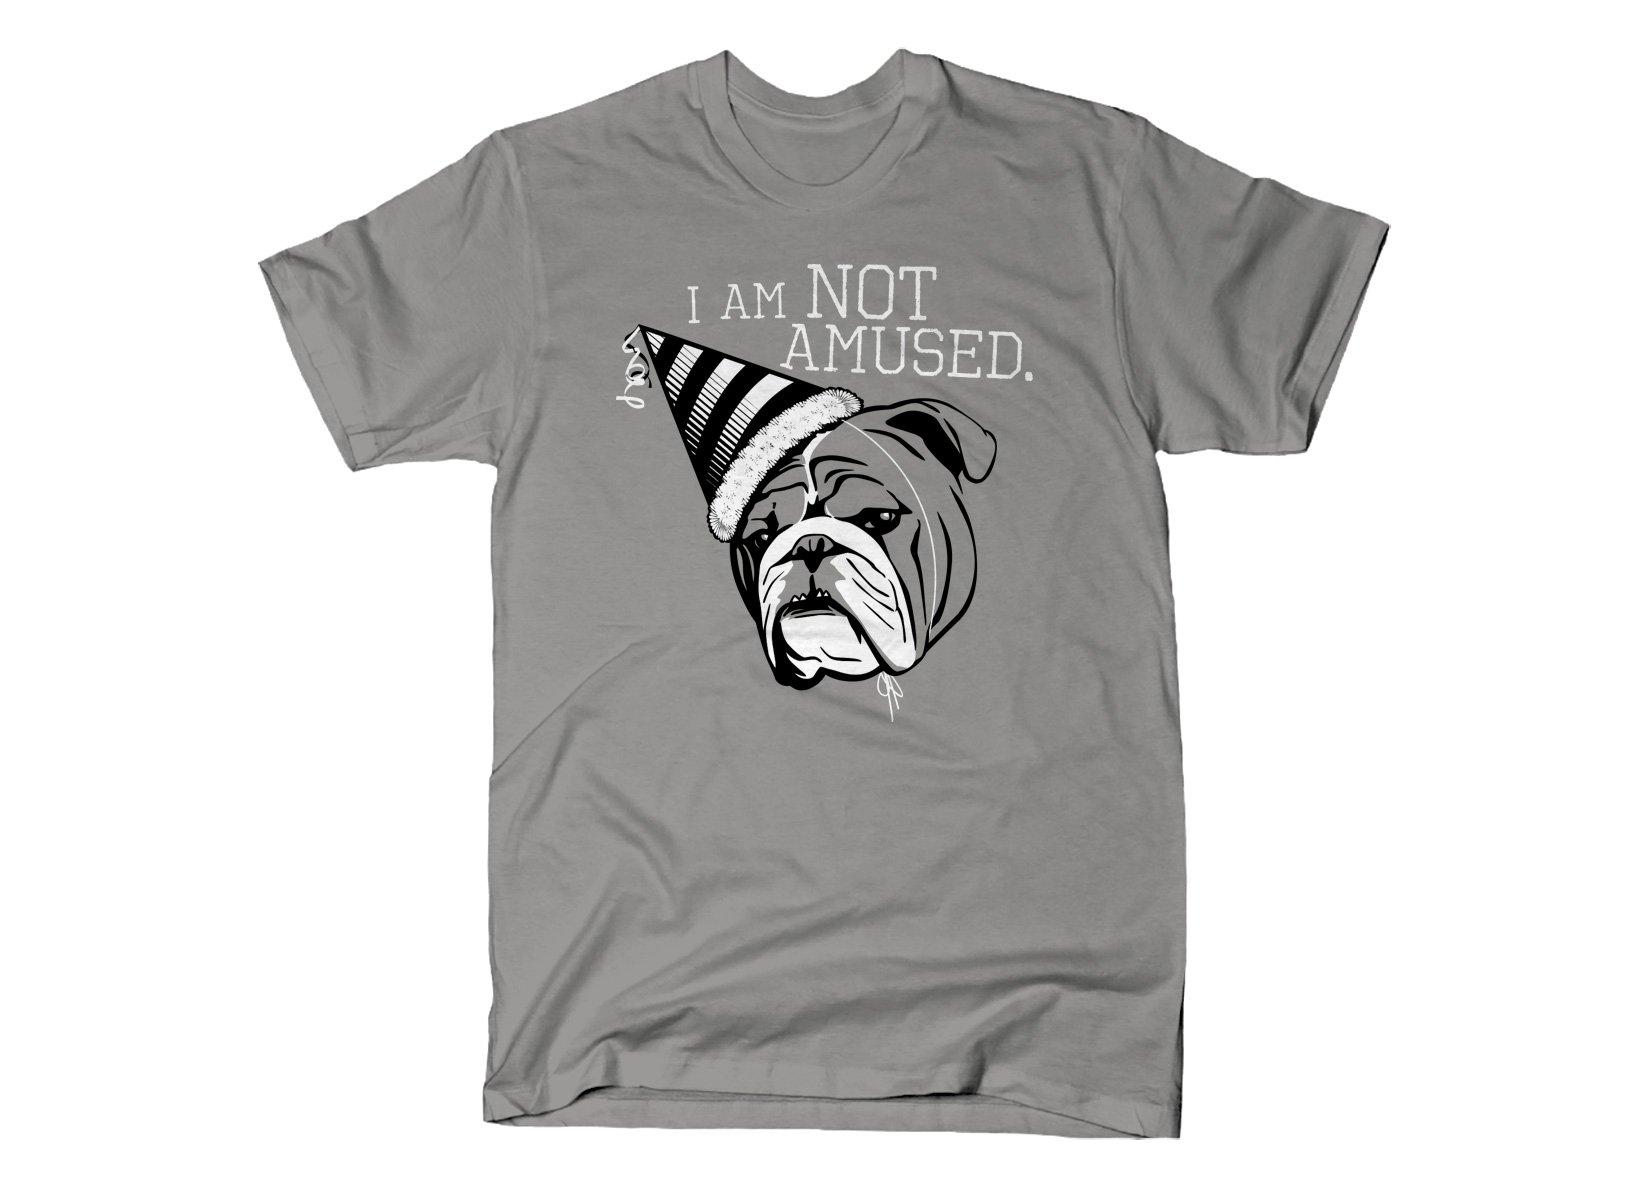 I Am Not Amused on Mens T-Shirt